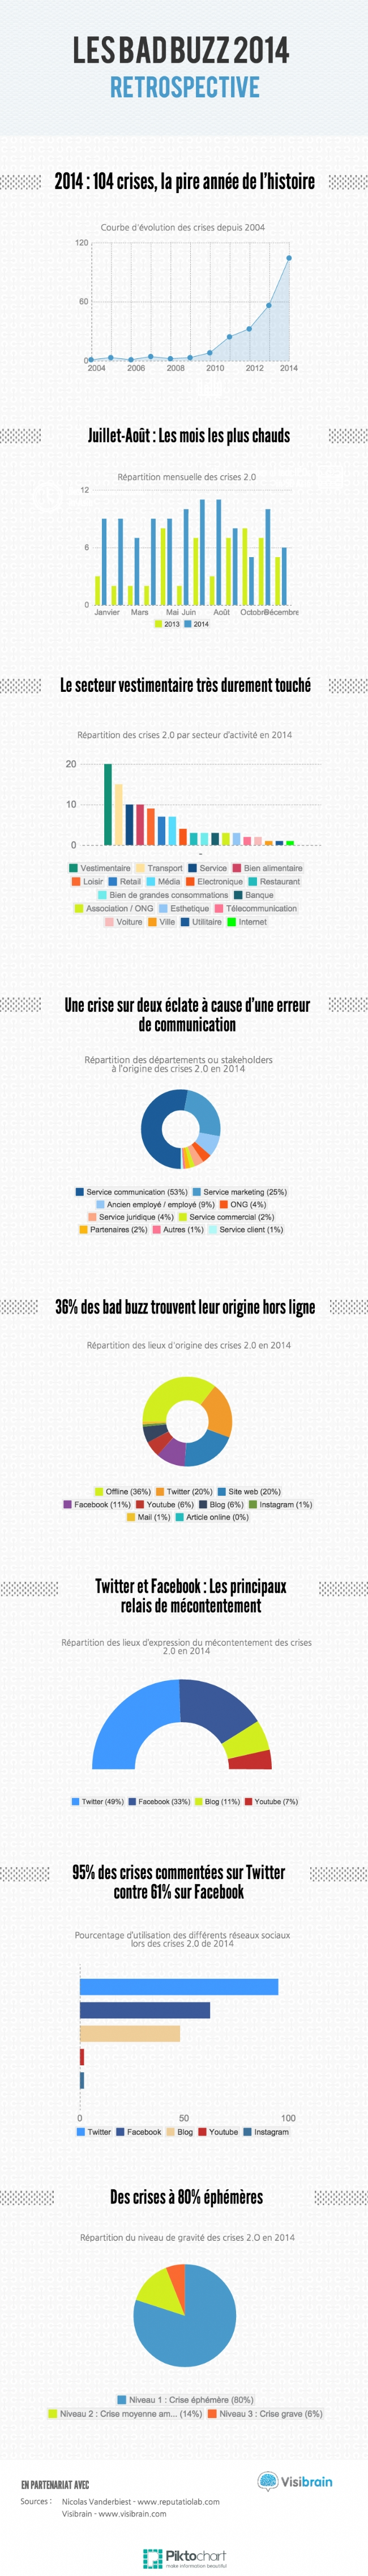 Infographie 173 - Les-bad-buzz-sont-relayes-priorite-Twitter